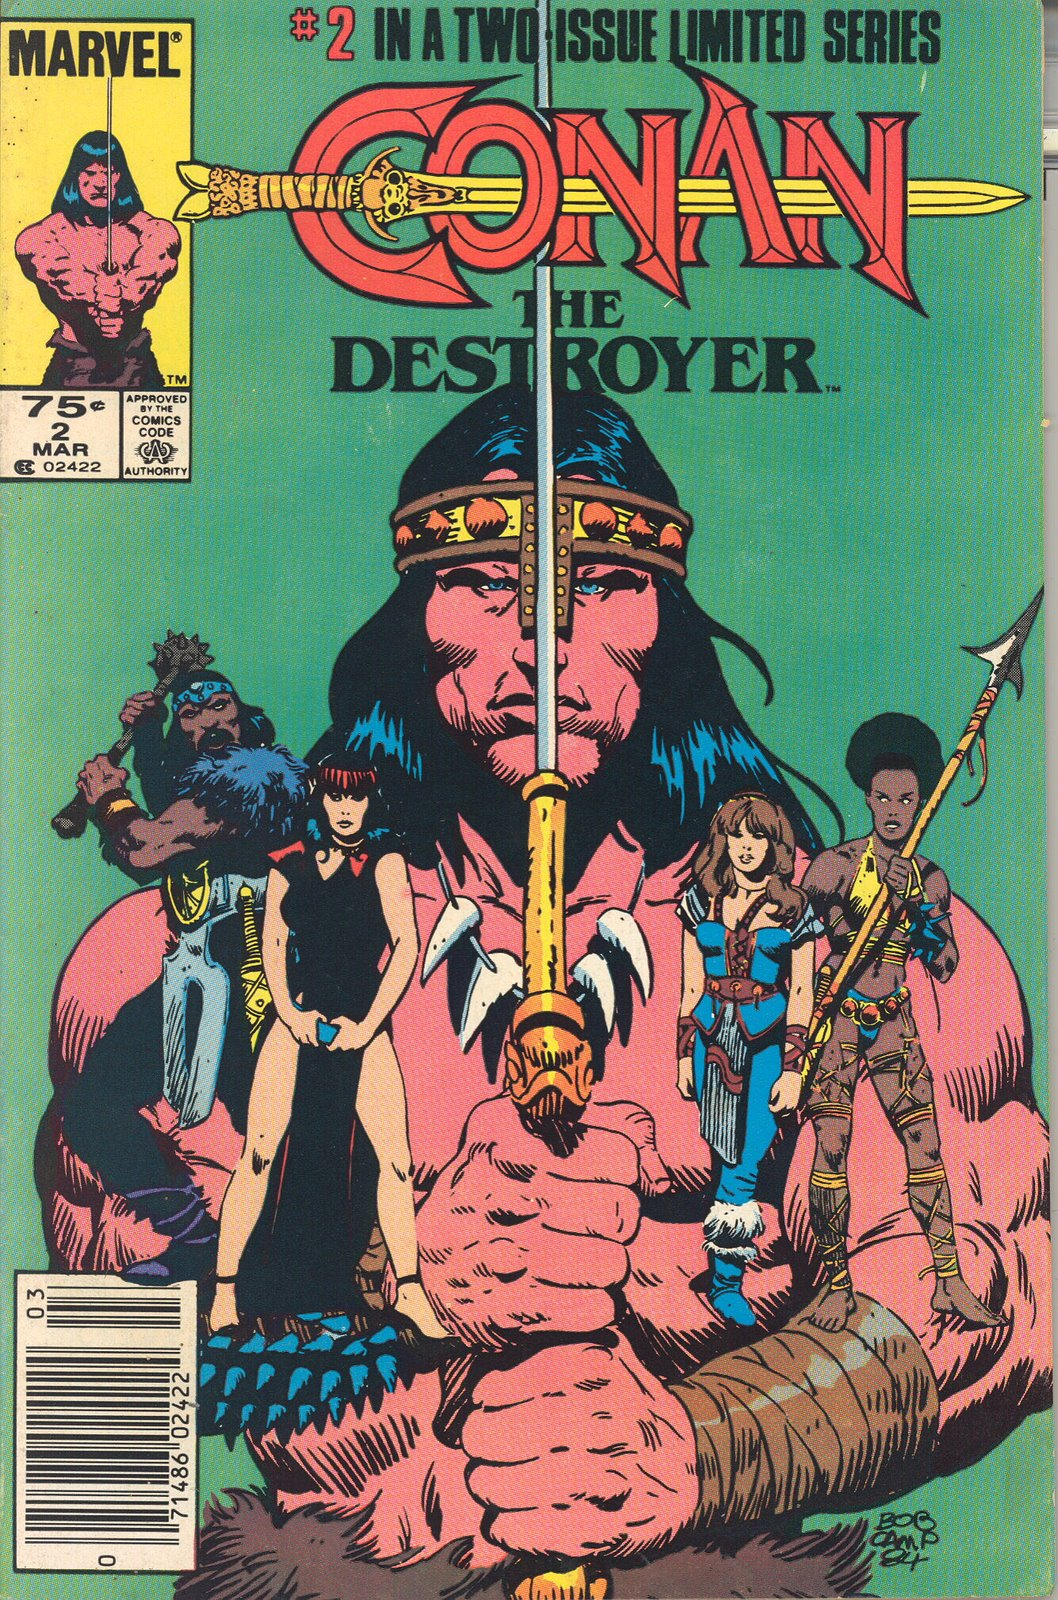 [Conan+the+Destroyer+1]